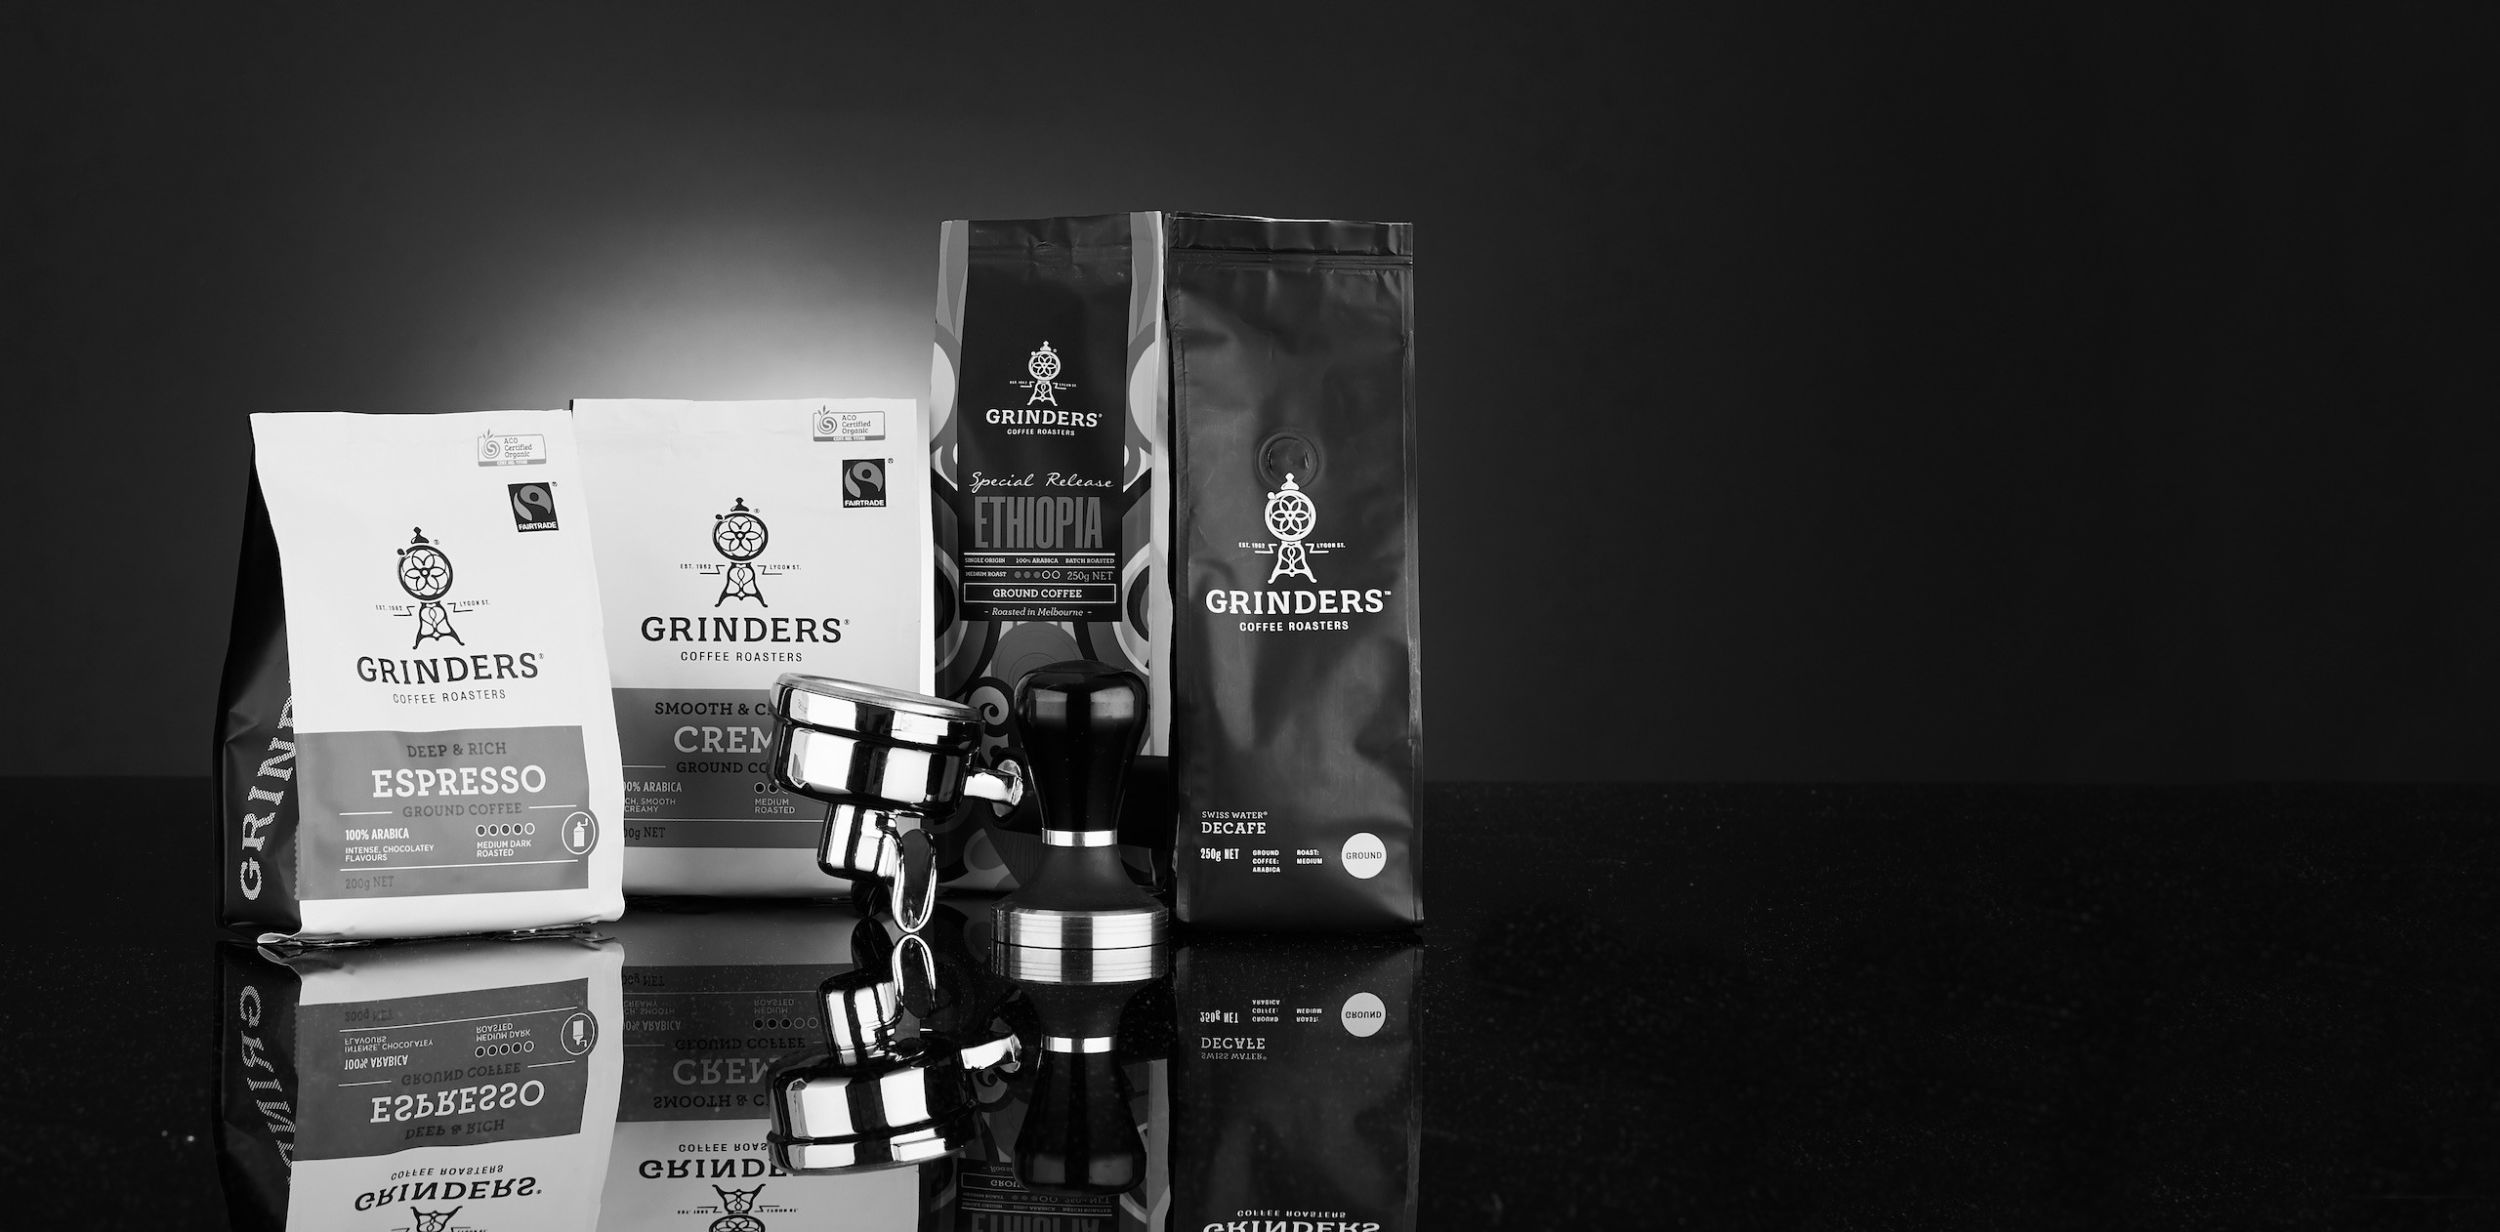 Grinders Coffee ground coffee packs in black and white 2